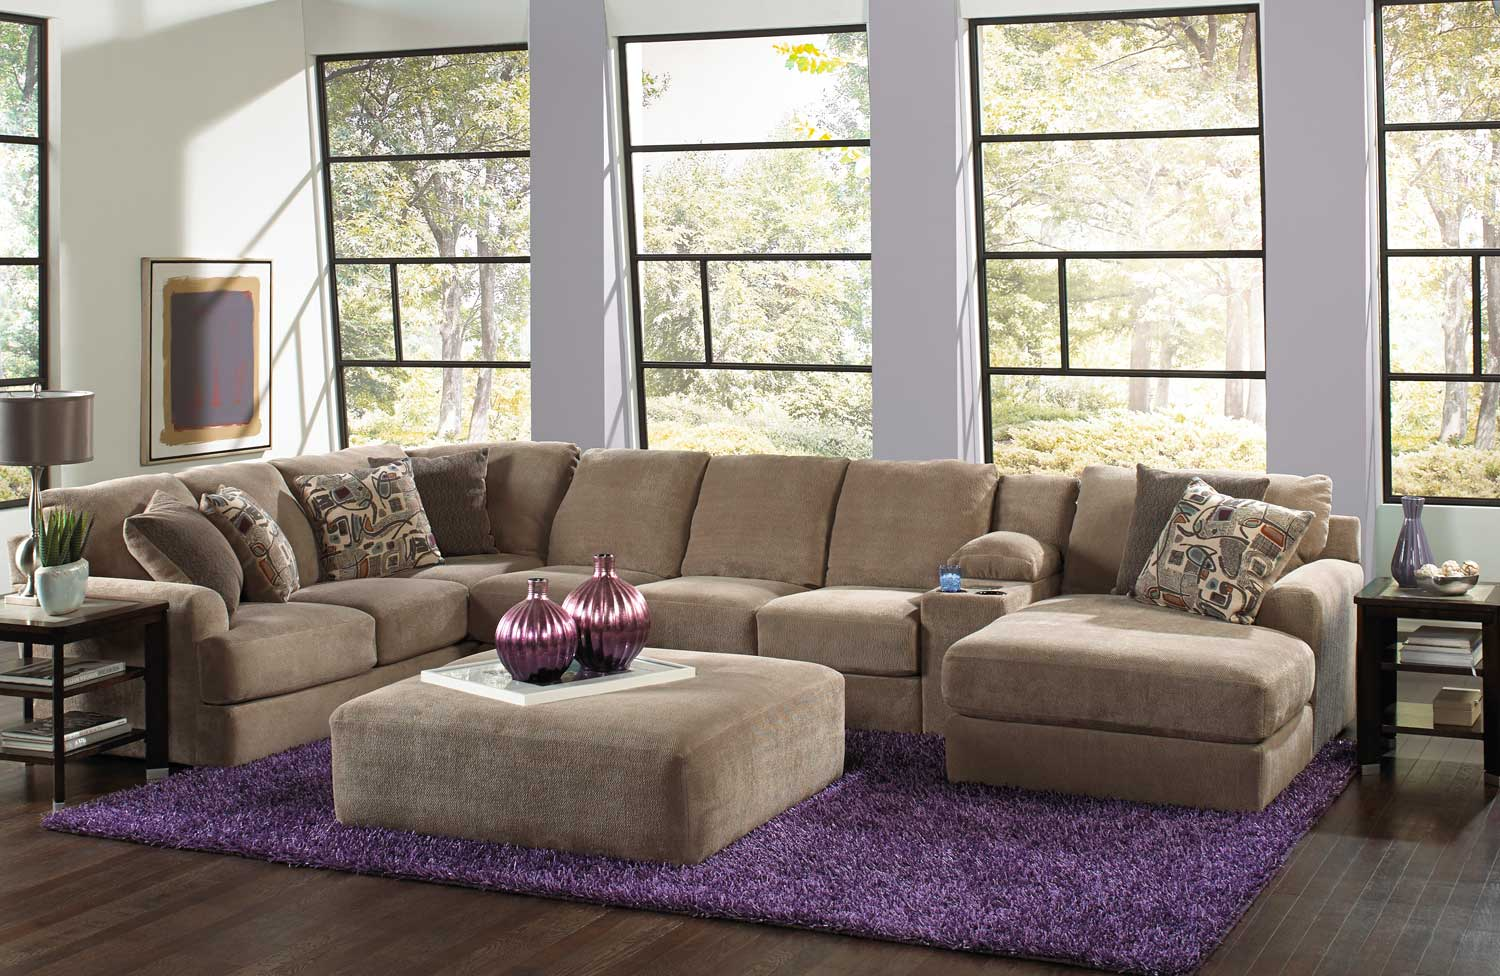 Jackson Malibu Large Chaise Sectional With Ottoman Set A Jf 3239 Set 1 Taupe At